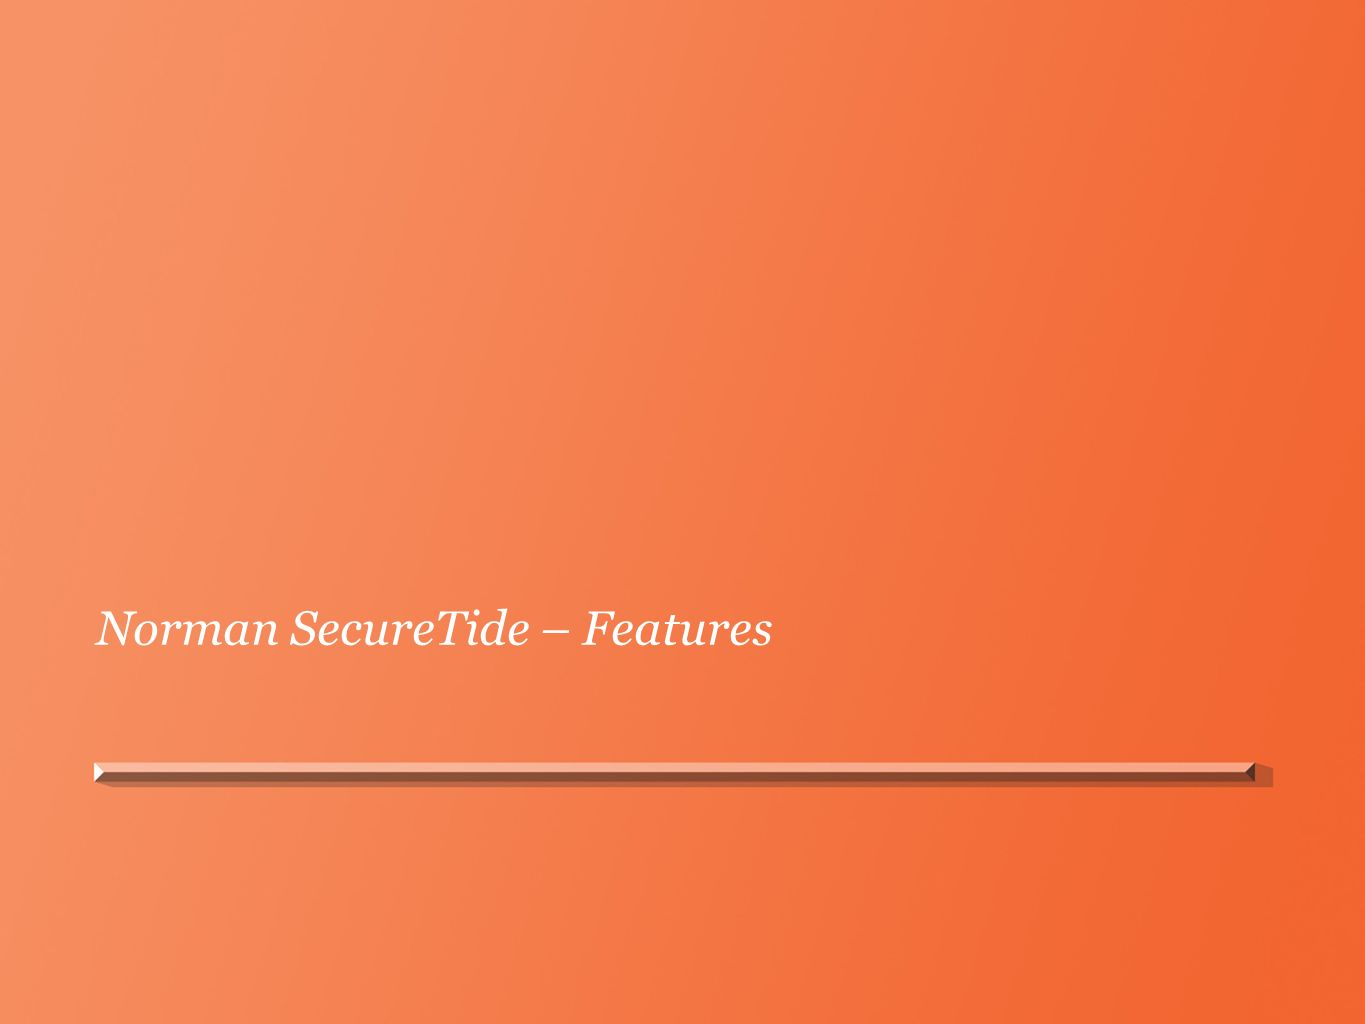 Norman SecureTide – Features